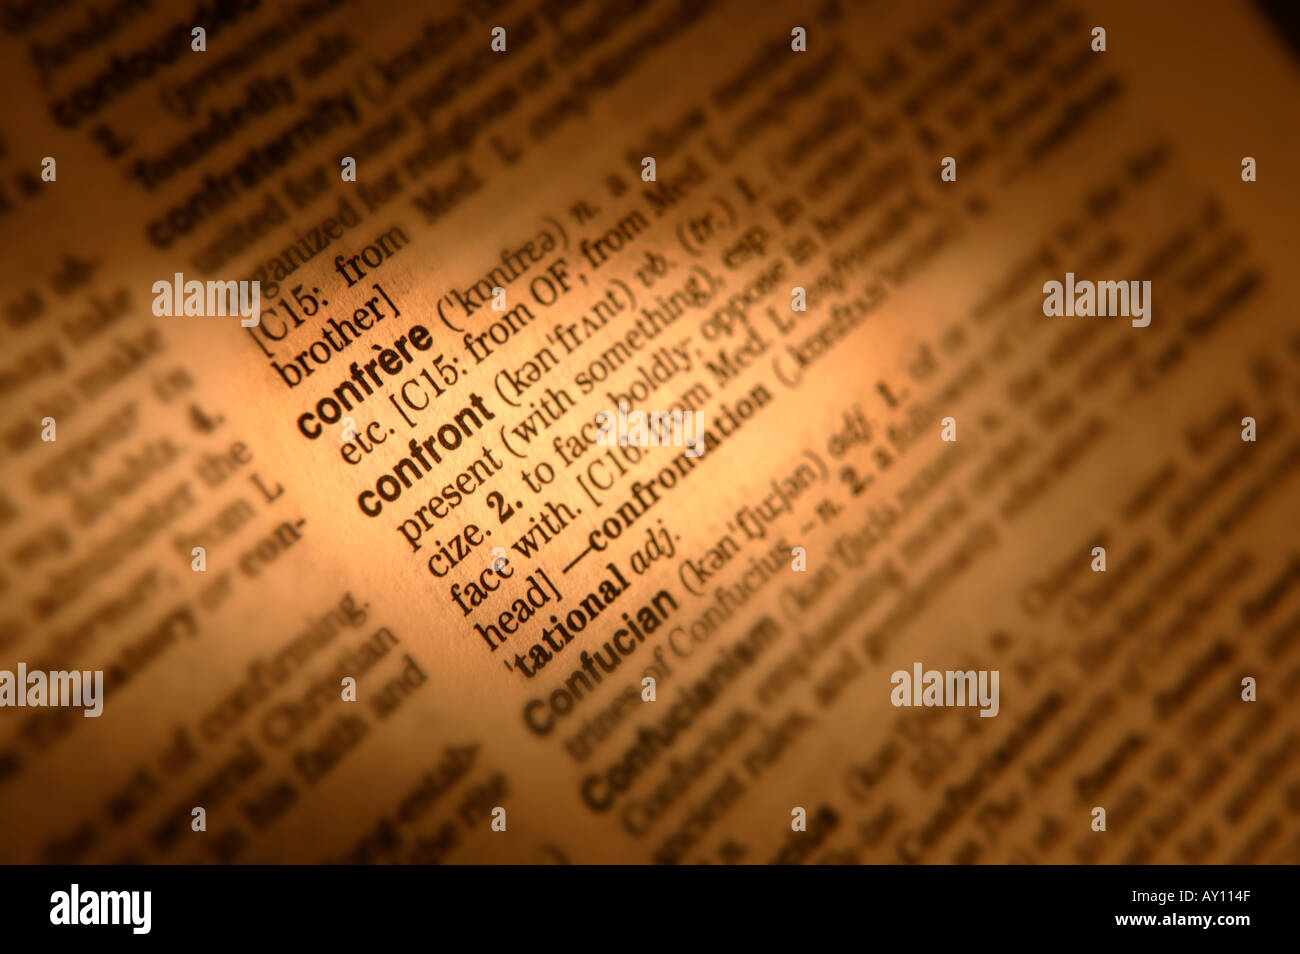 CLOSE UP OF DICTIONARY PAGE SHOWING DEFINITION OF THE WORD CONFRONT - Stock Image